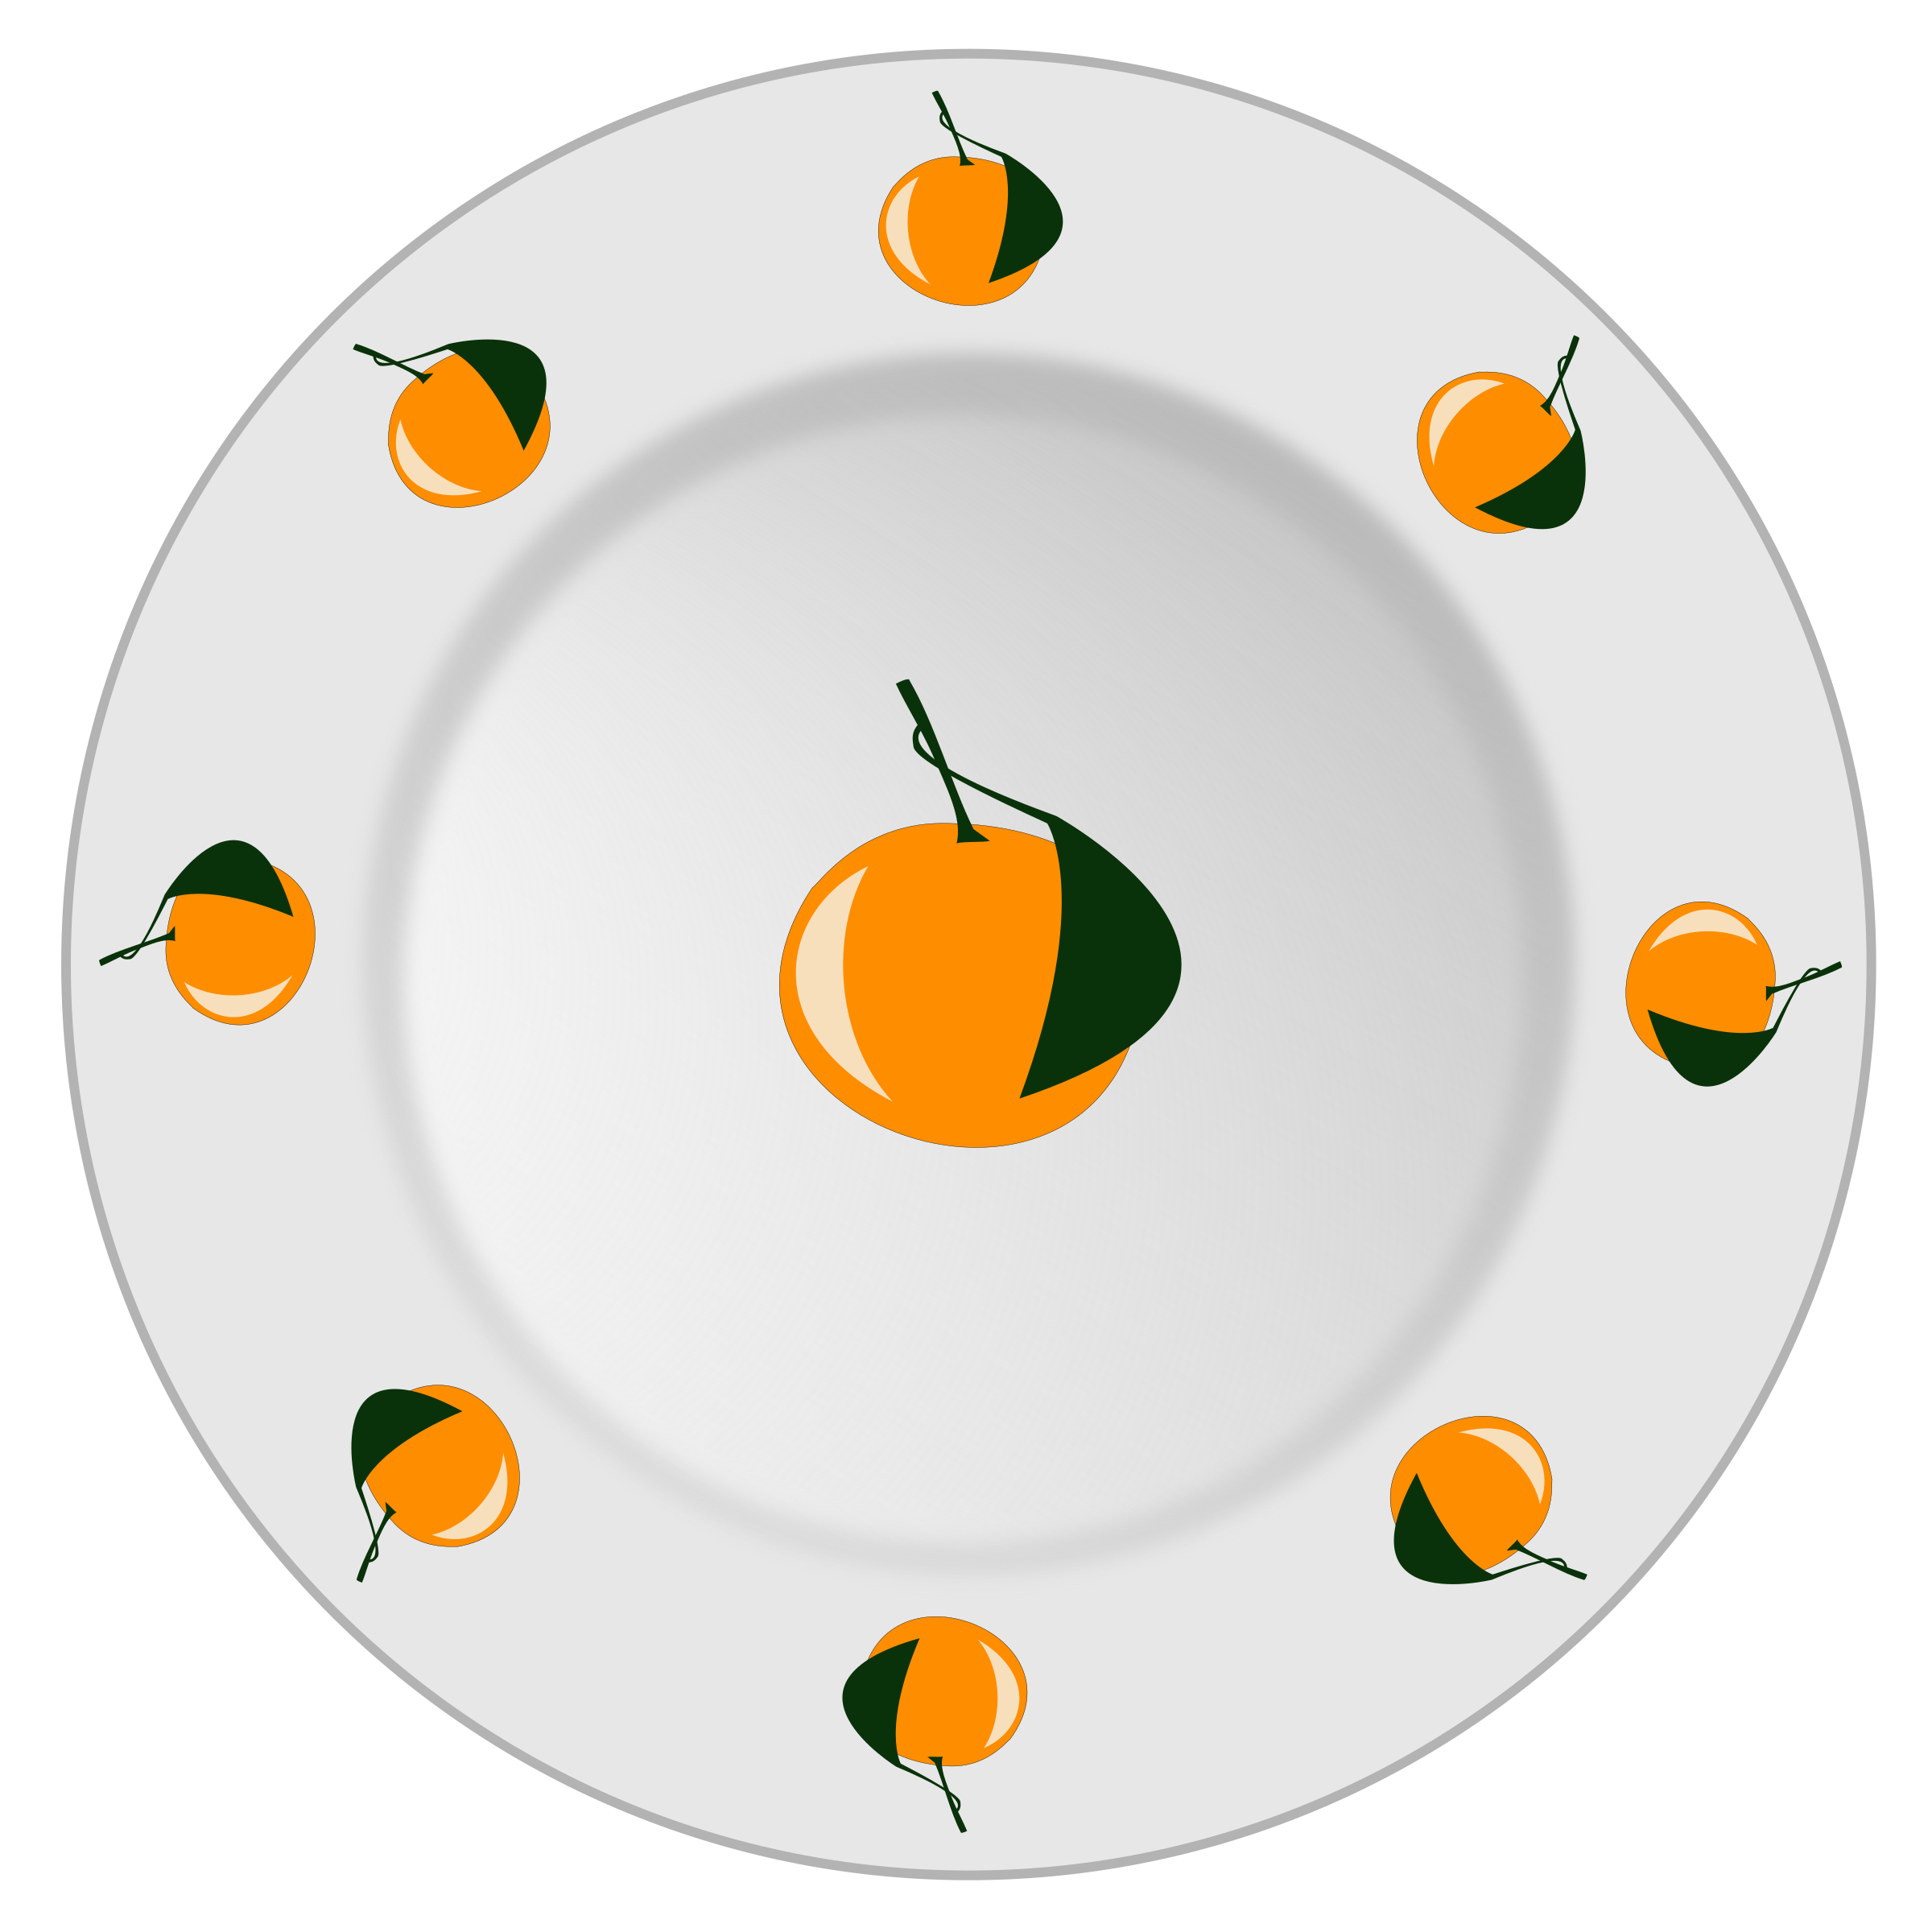 Plate with orange pattern by yamachem